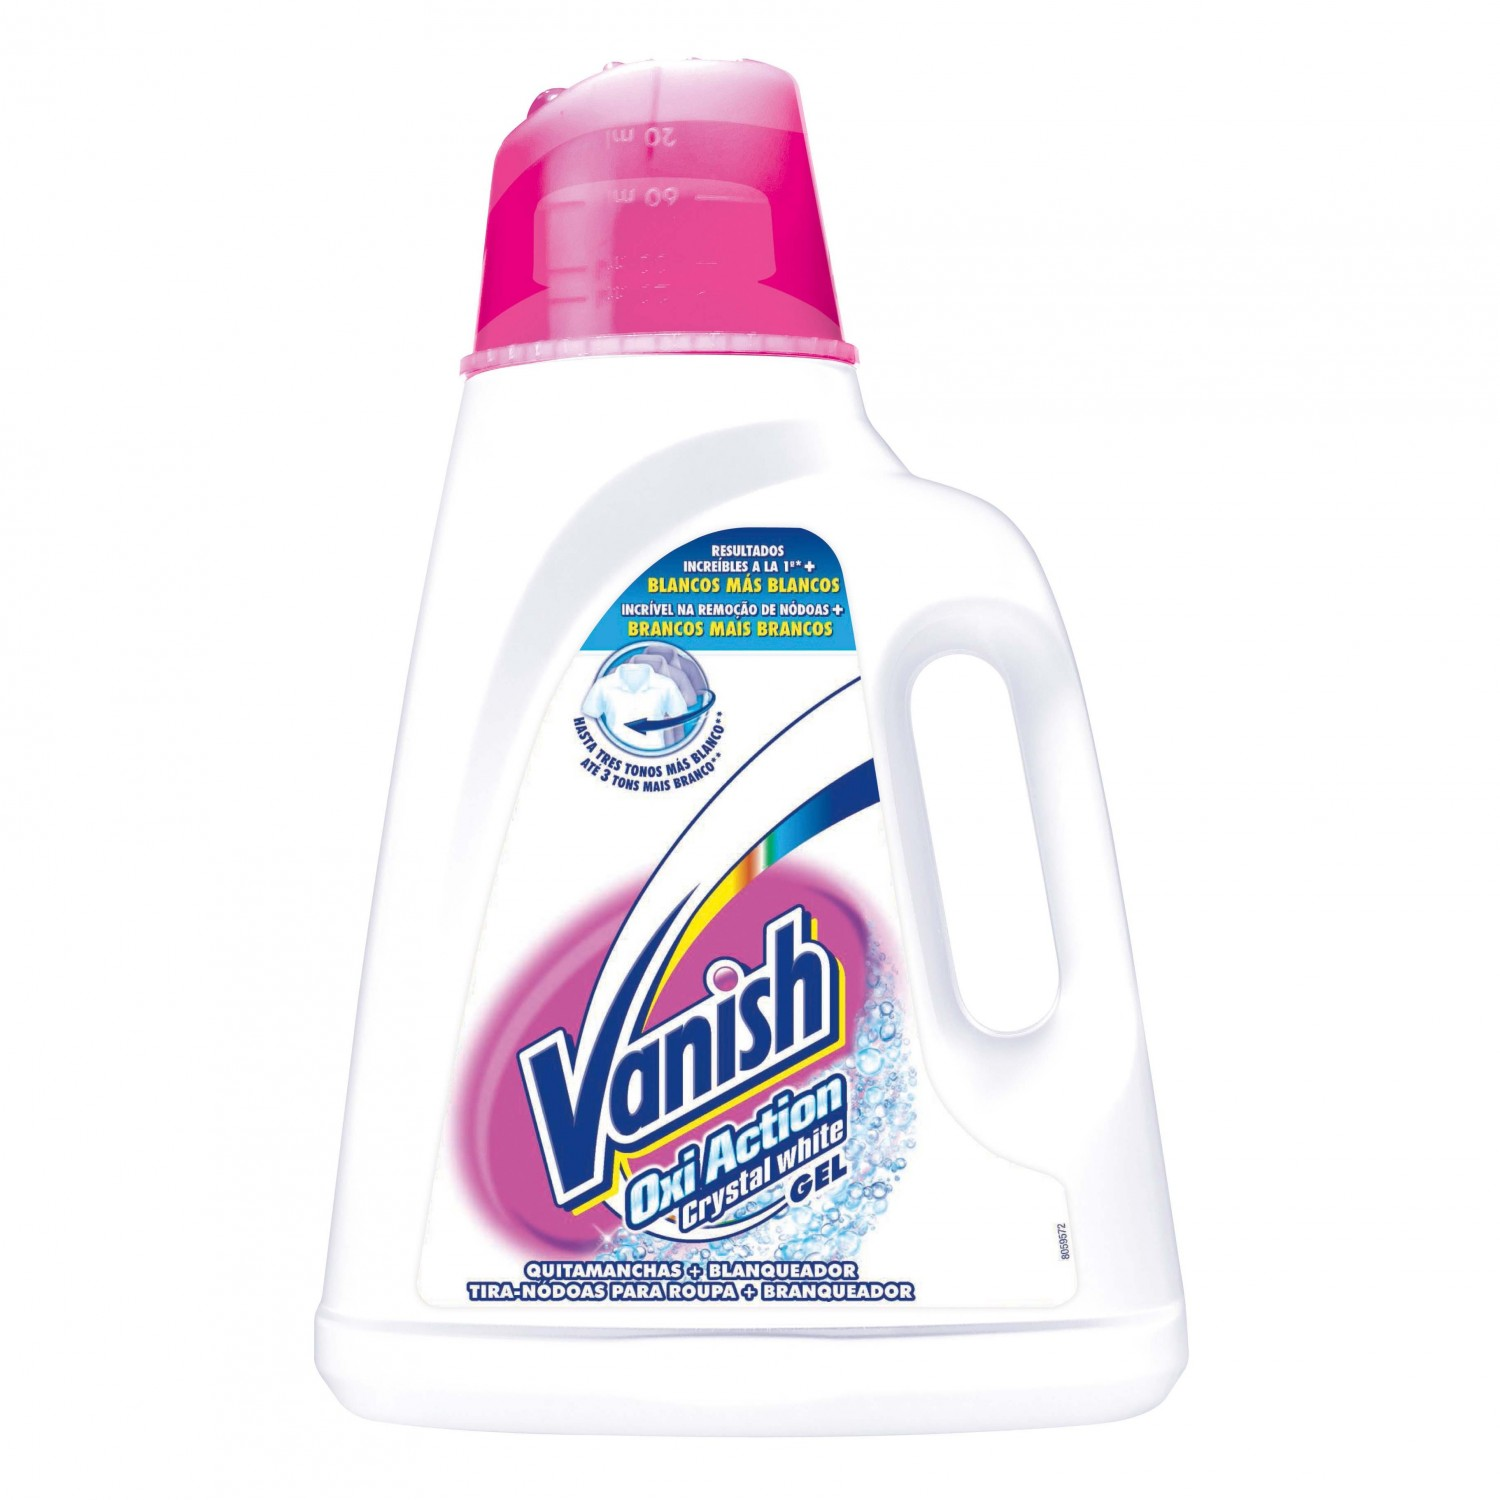 Vanish quitamanchas gel oxi action crystal white de 2l.